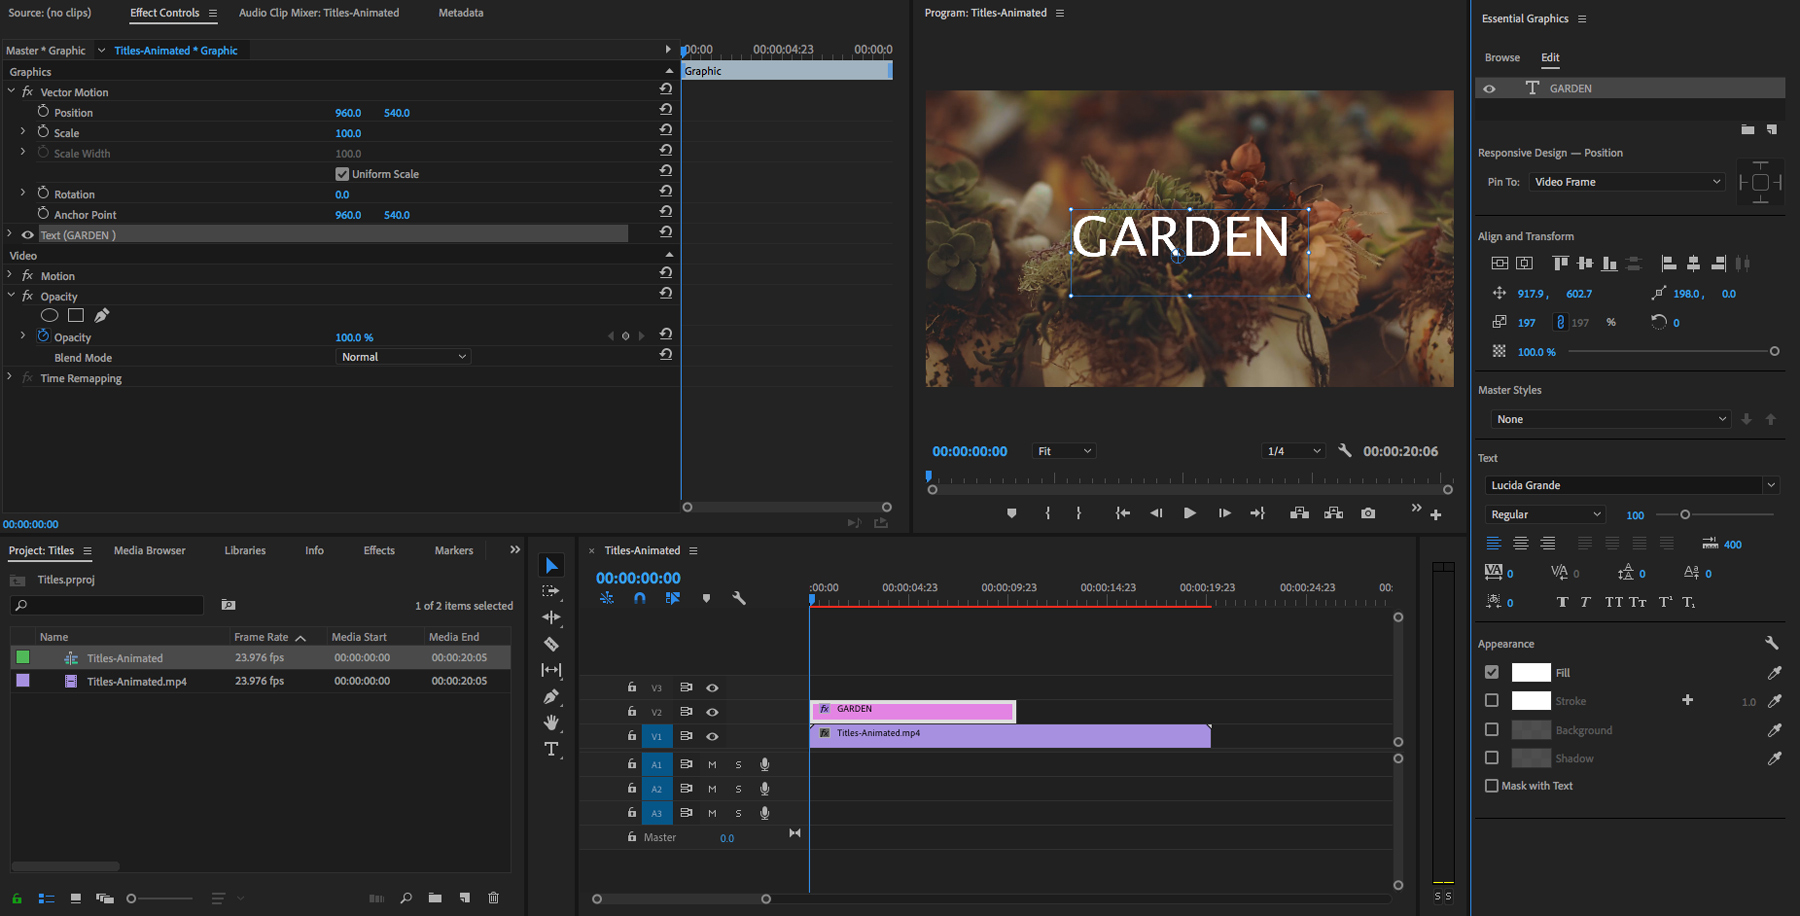 Editing video titles in Premiere Pro